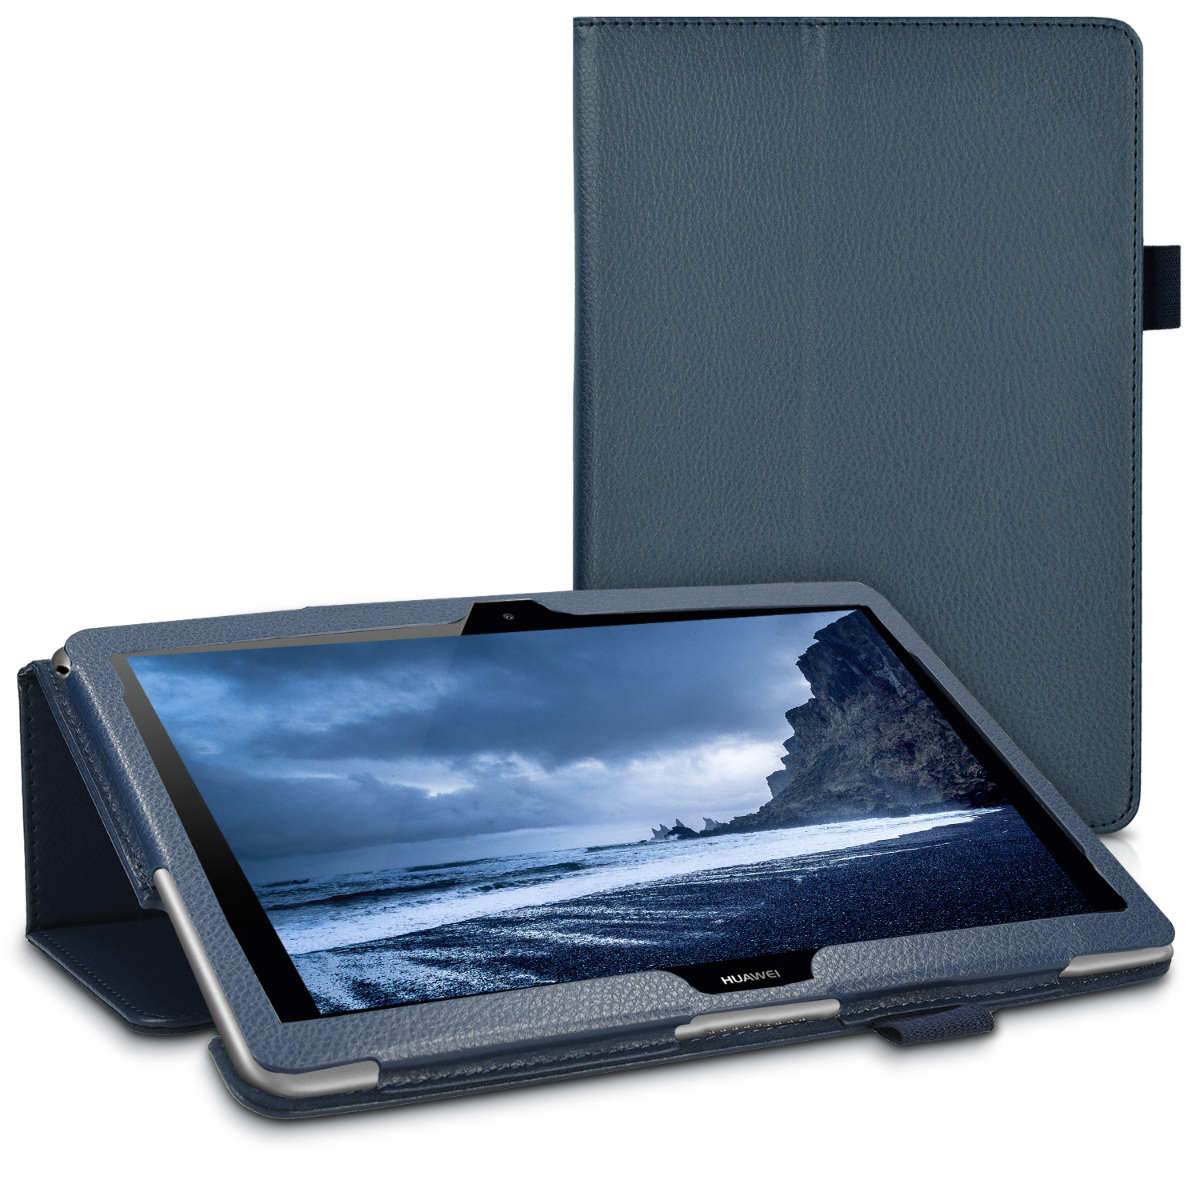 CUSTODIA-PER-HUAWEI-MEDIAPAD-T3-10-COVER-TABLET-STAND-CASE